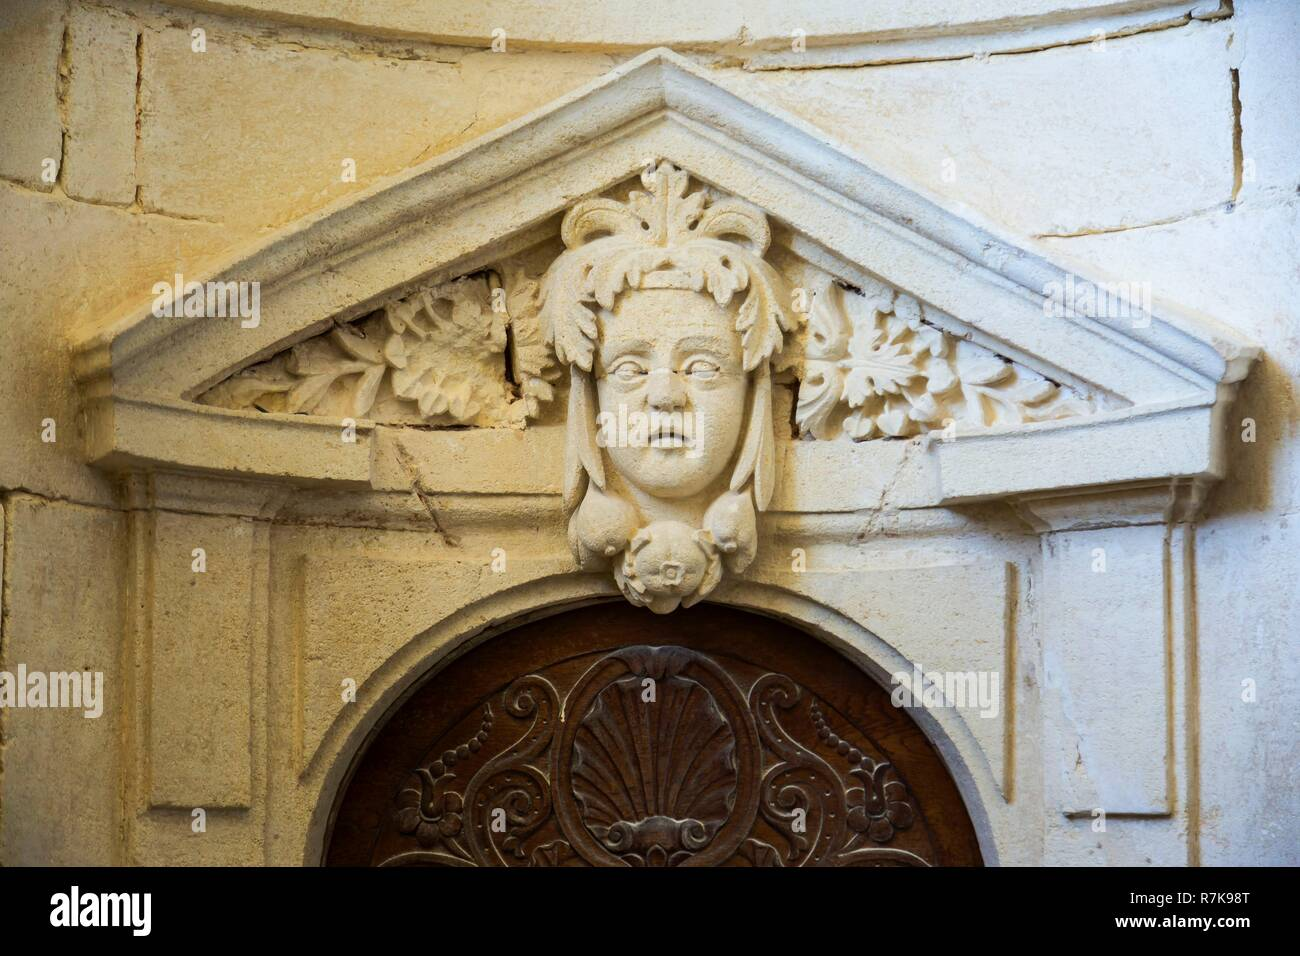 France, Gironde, Verdon sur Mer, rocky plateau of Cordouan, lighthouse of Cordouan, classified Historical Monuments, the King's apartment or kings' room - Stock Image